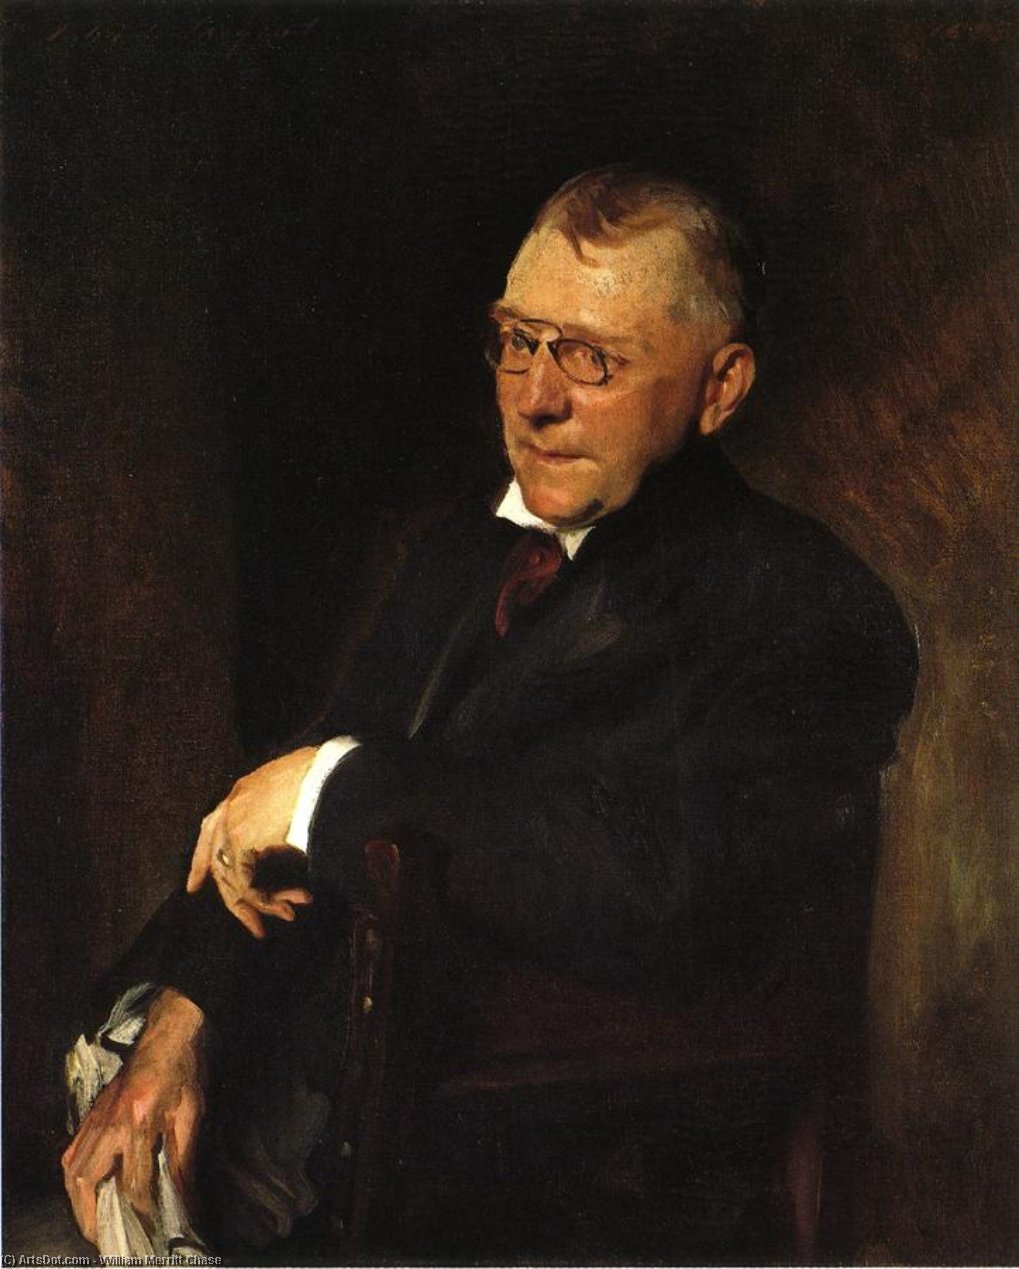 Porträt von James Whitcomb Riley, 1903 von William Merritt Chase (1849-1916, United States) | Malerei Kopie | ArtsDot.com